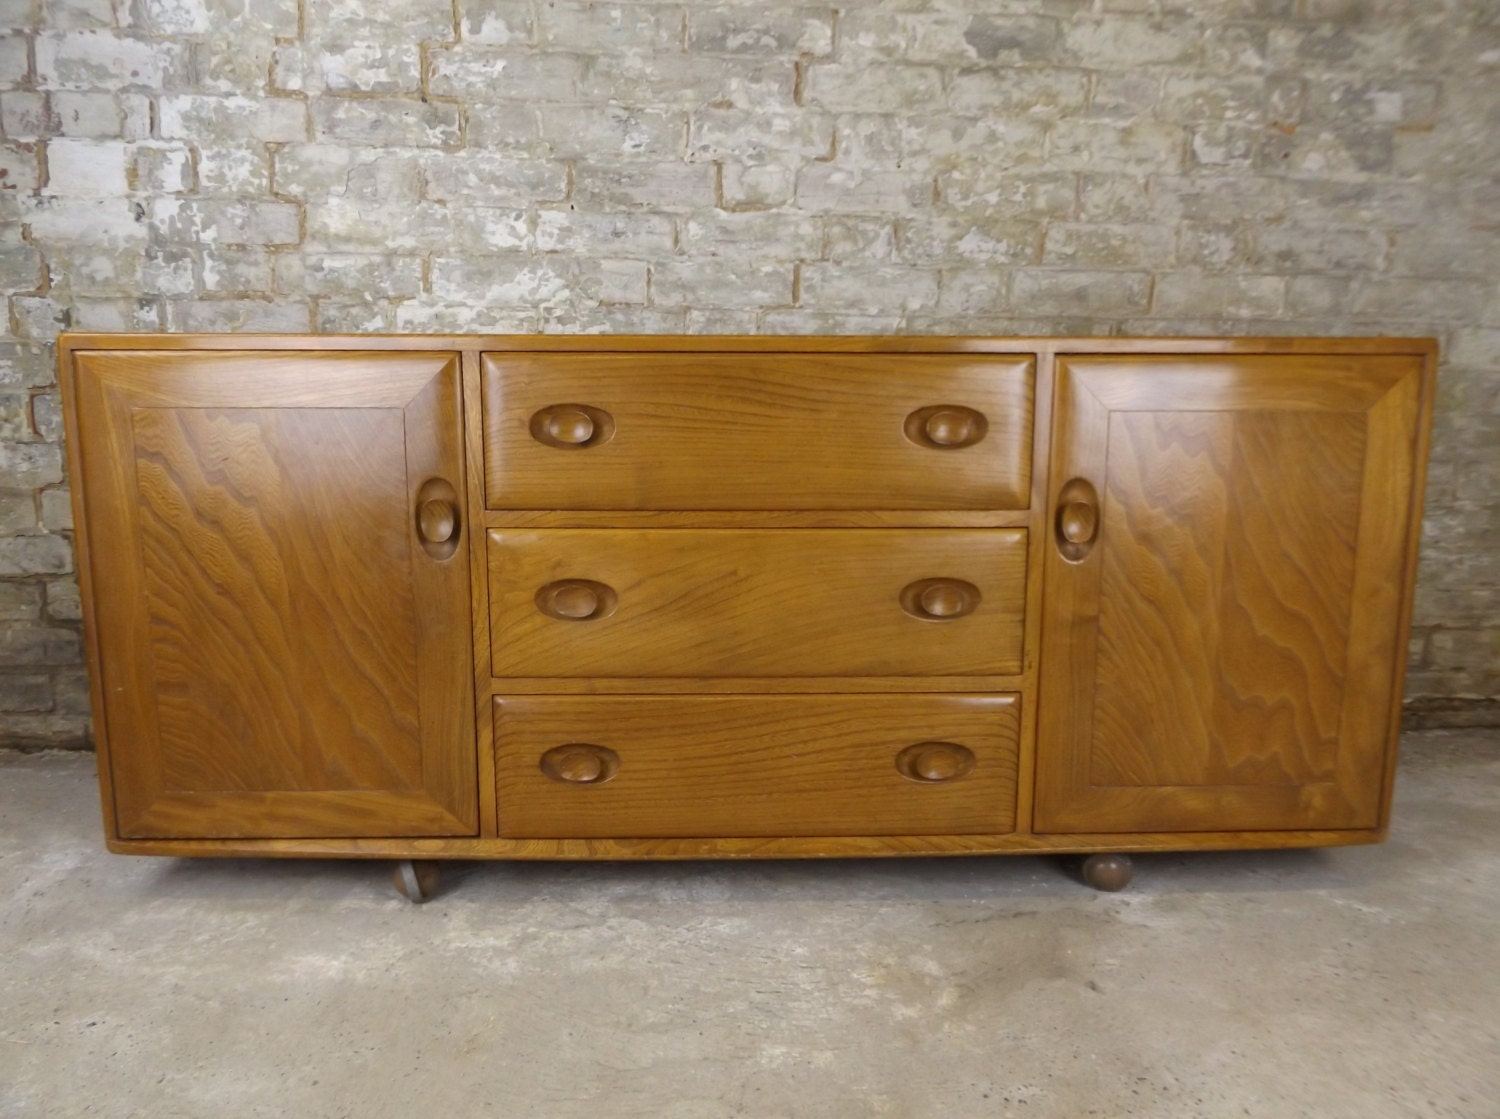 Retro ercol windsor sideboard light elm with nice grain for Ercol mural cabinets and sideboards